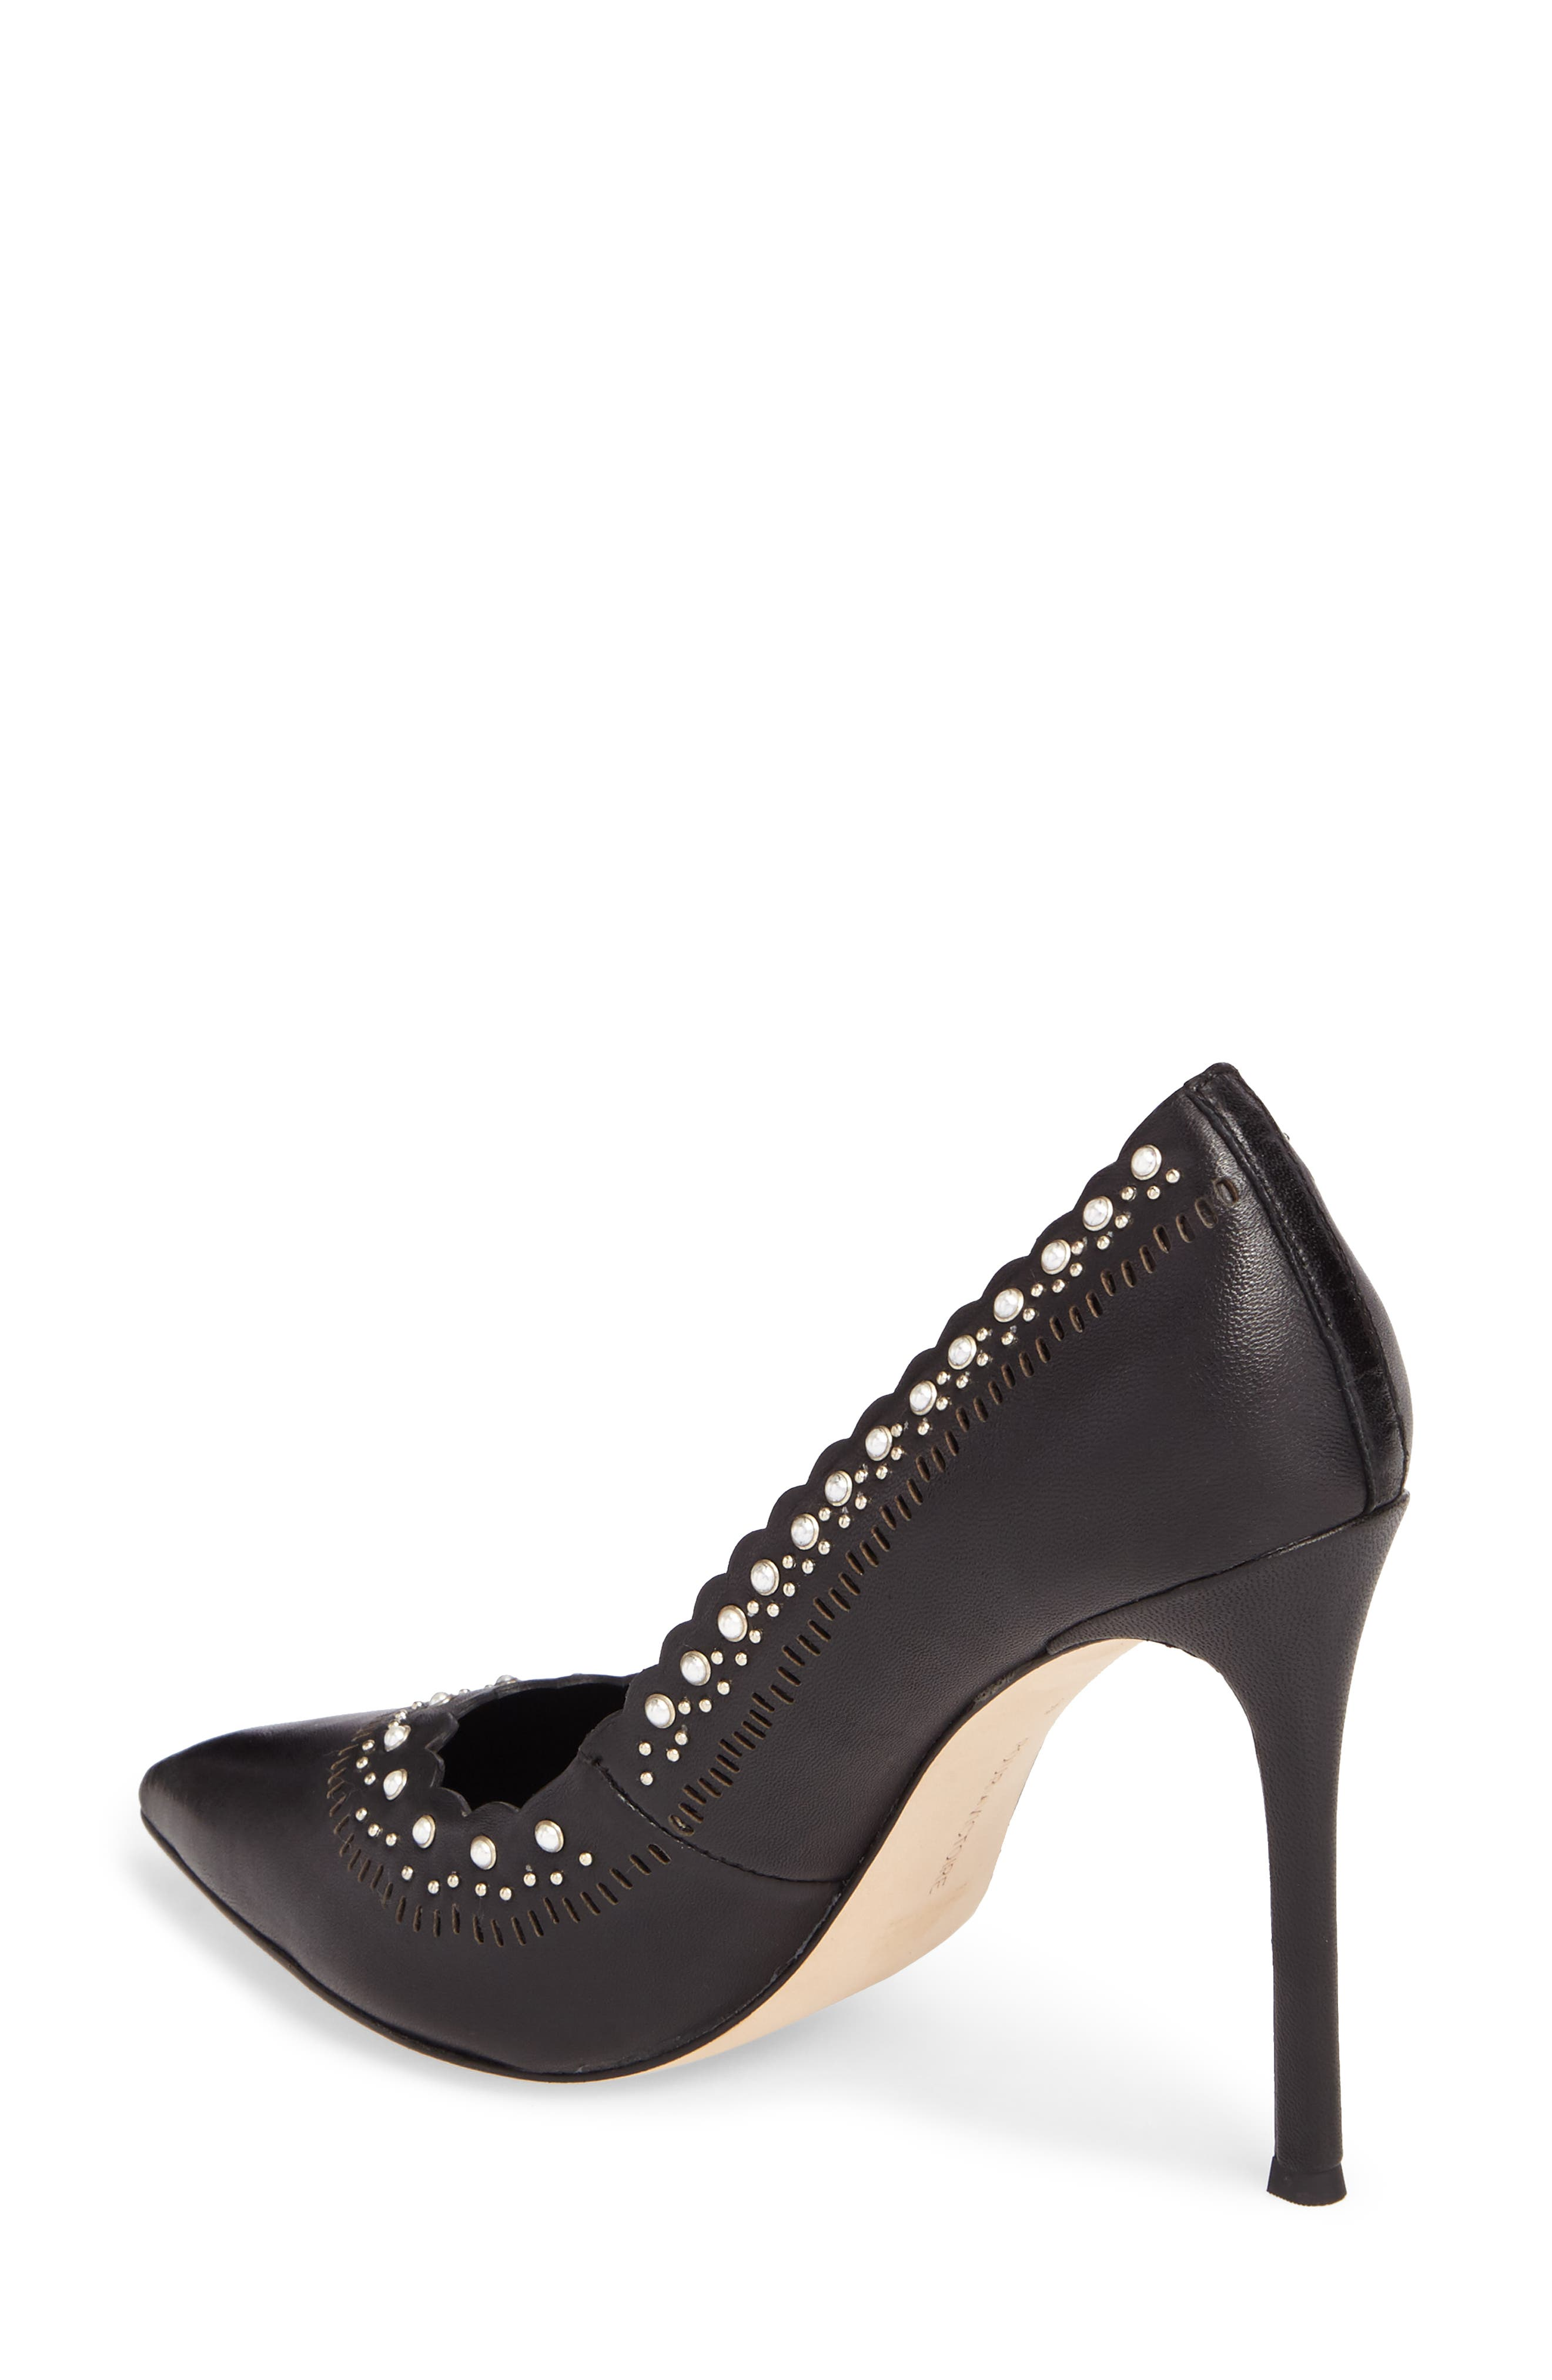 Cerella Embellished Pump,                             Alternate thumbnail 2, color,                             Black Leather